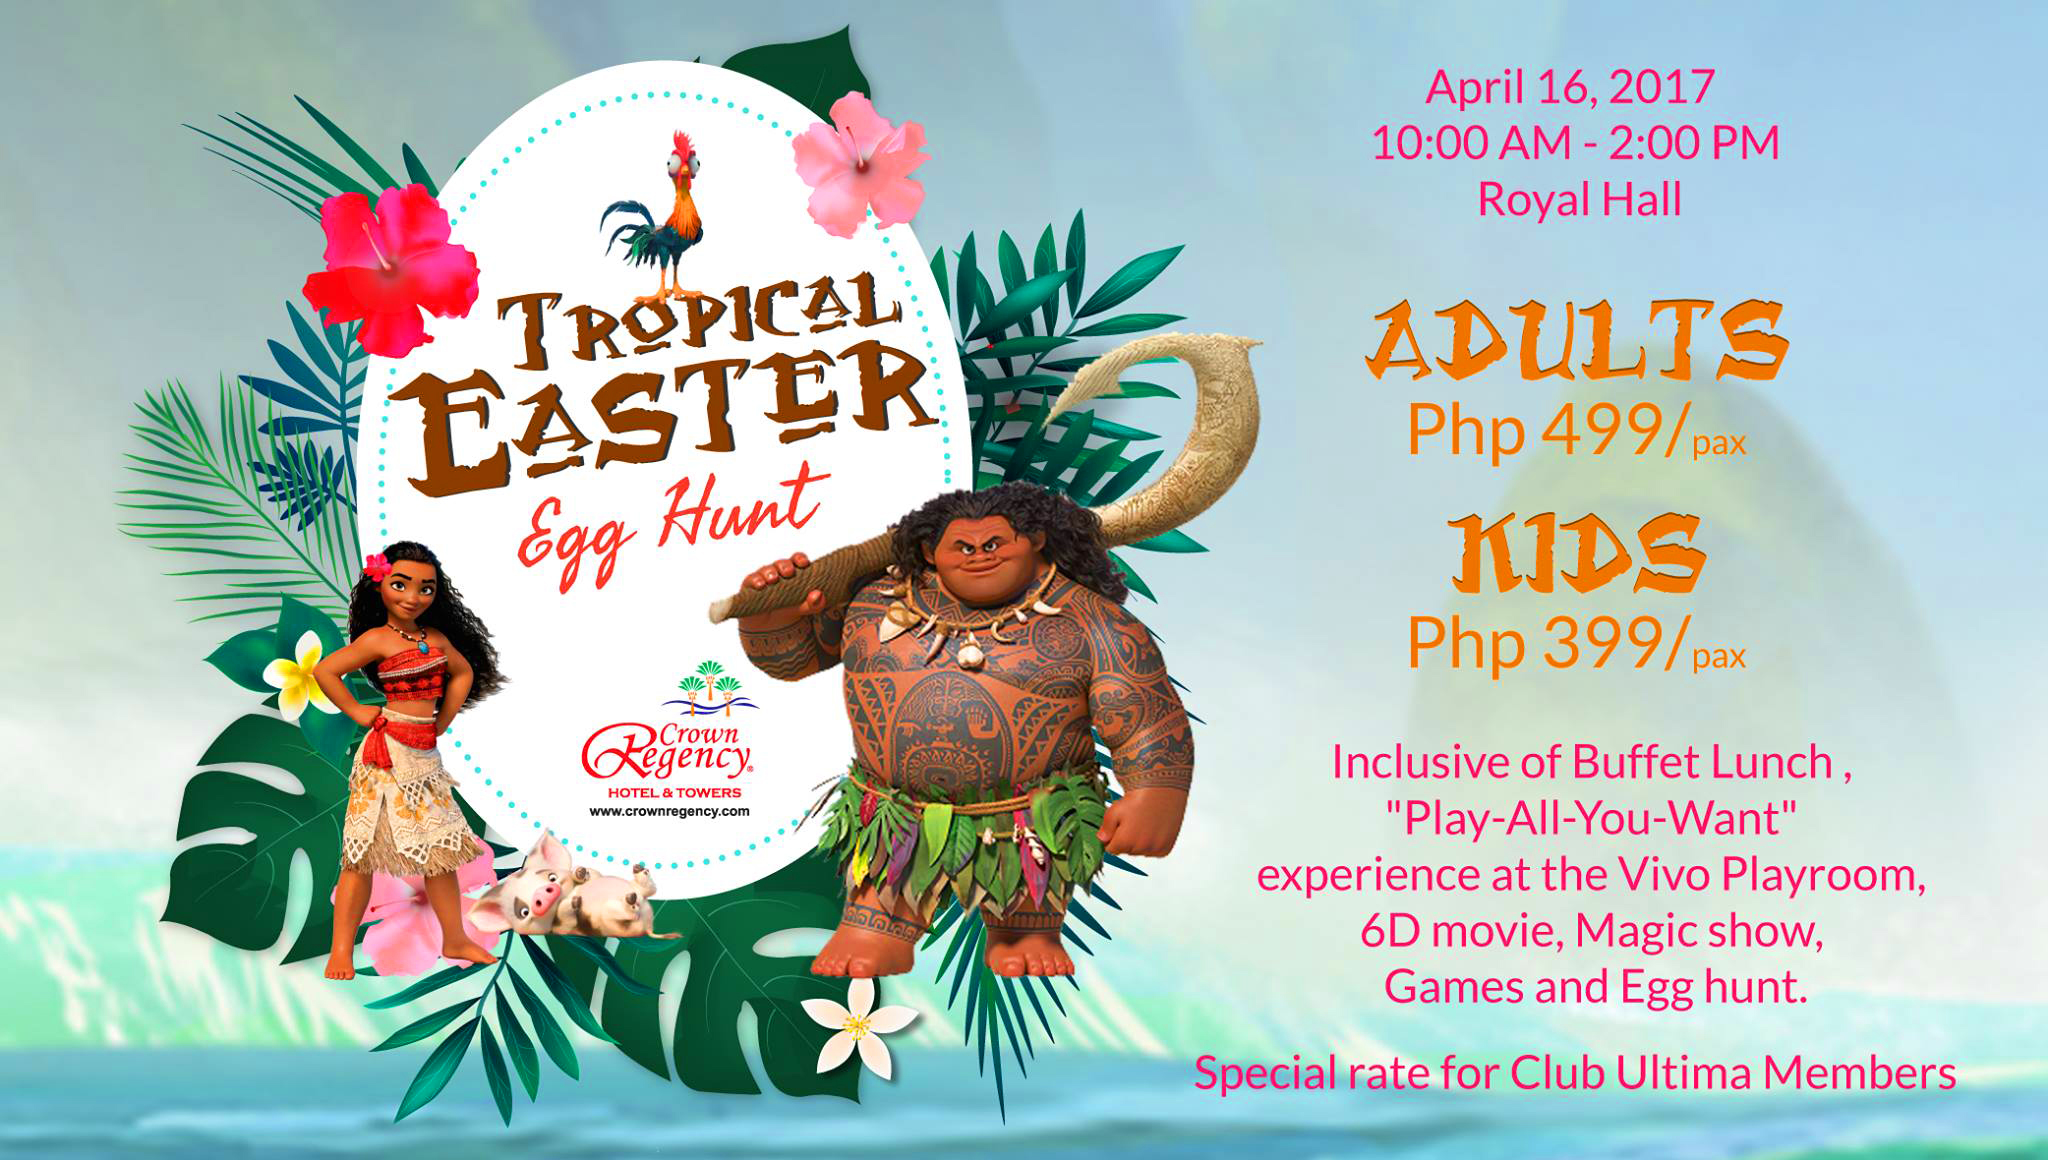 crown regency hotel and towers ester egg hunt 2017